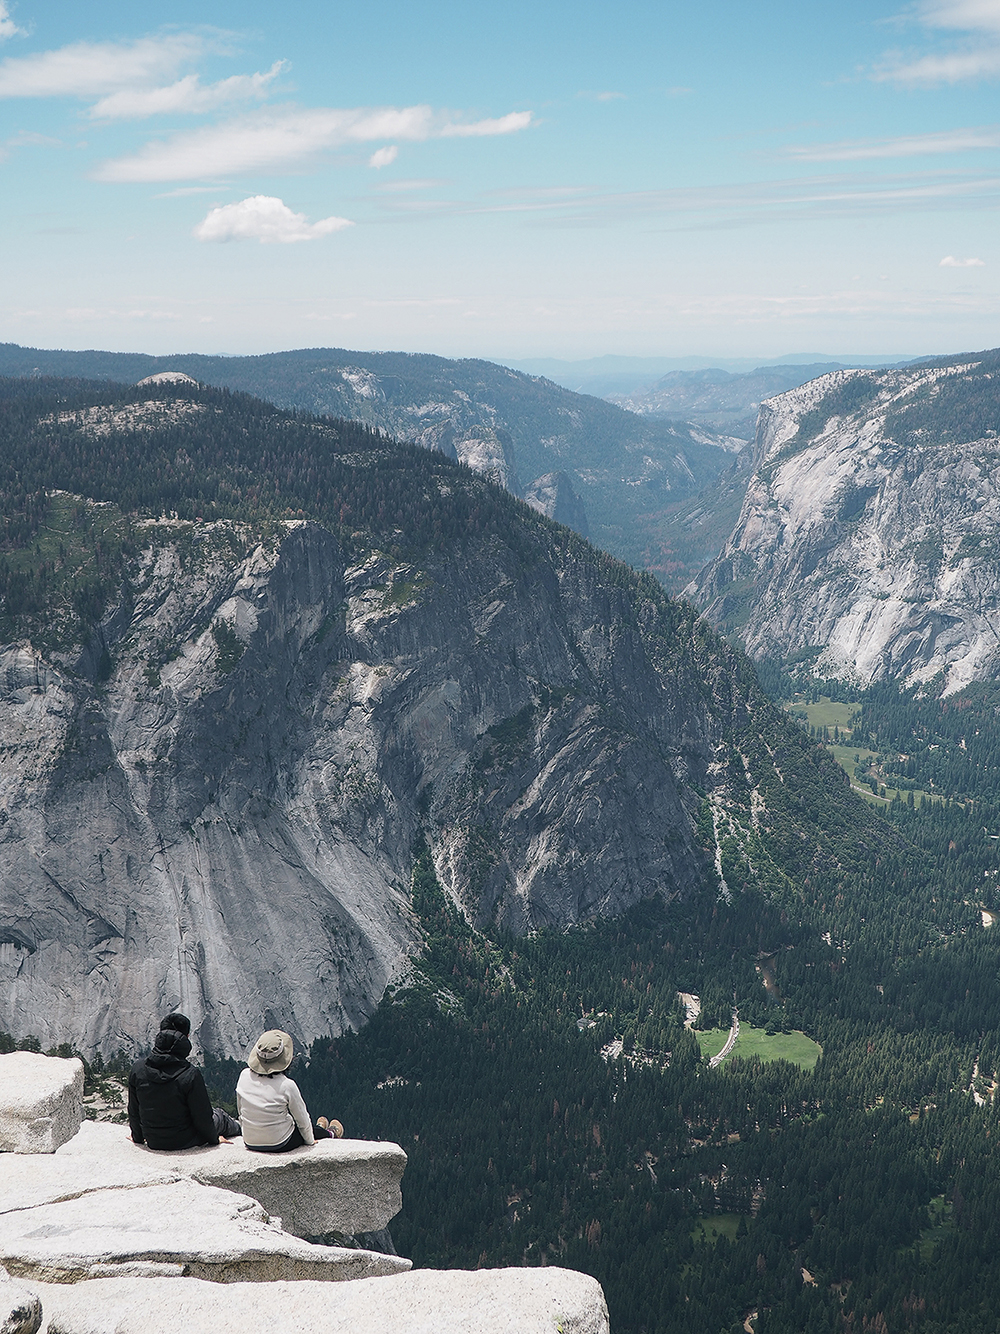 the view from the top of Half Dome